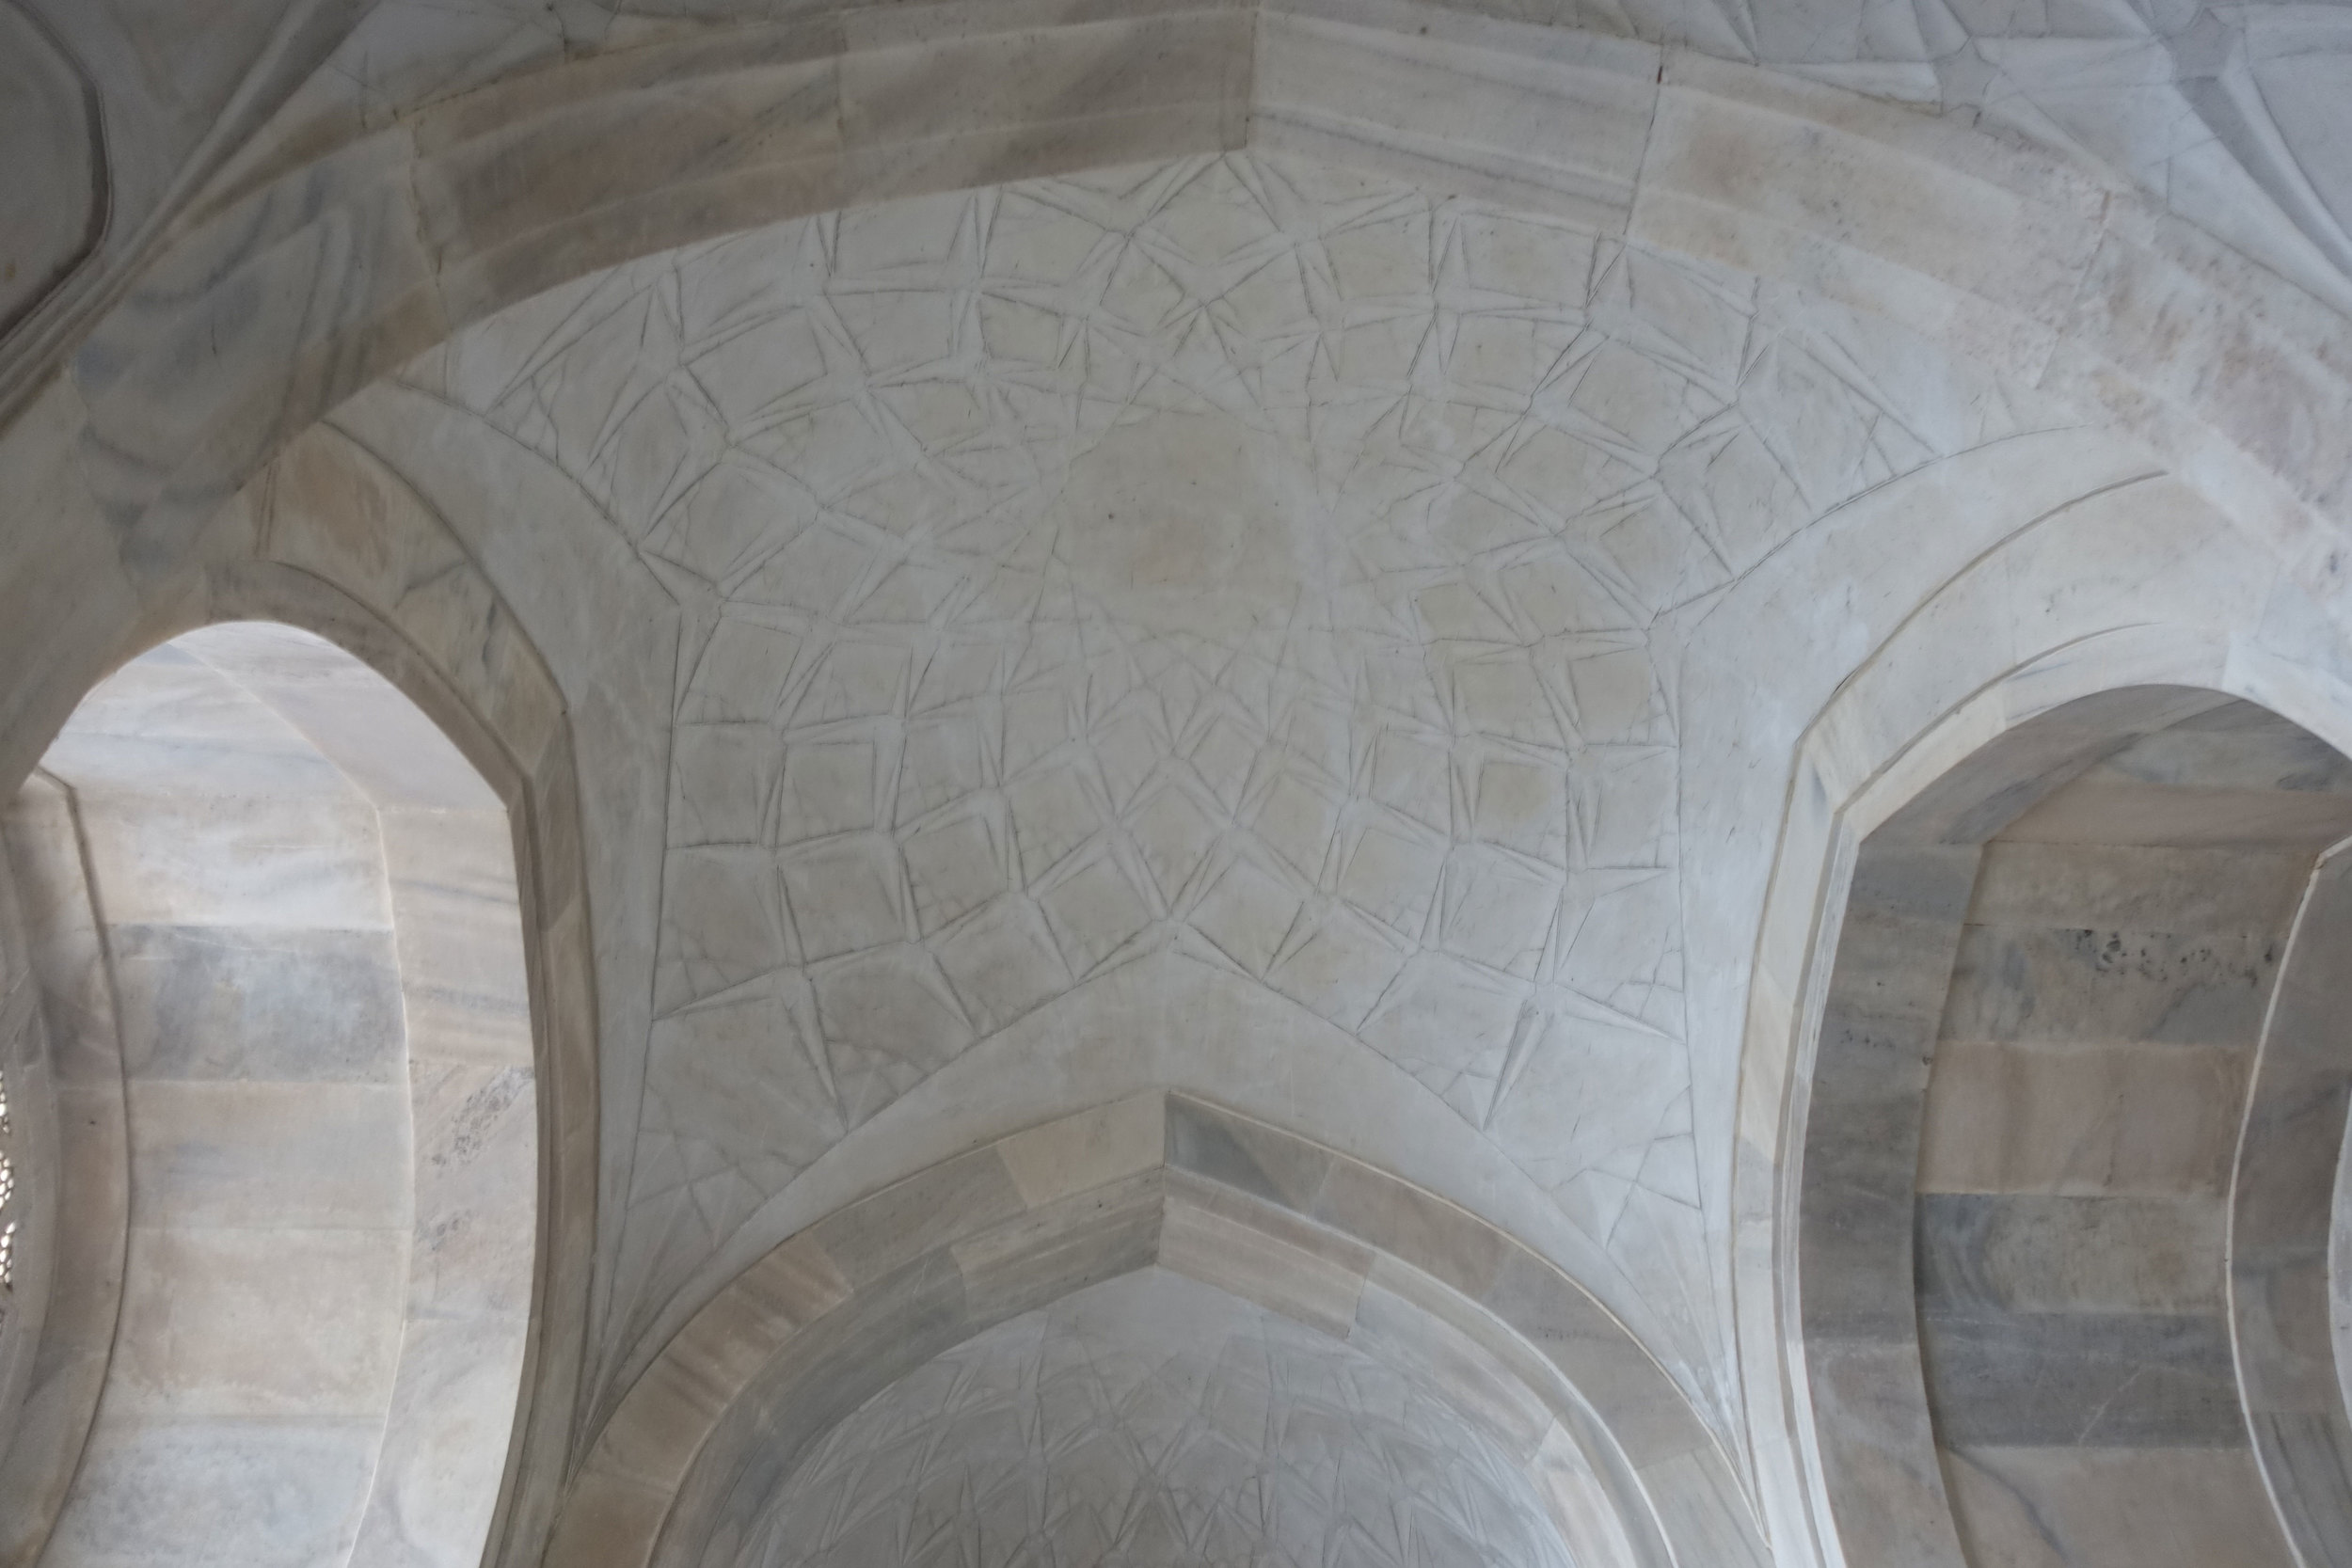 A star shaped dome on the way out of the tomb